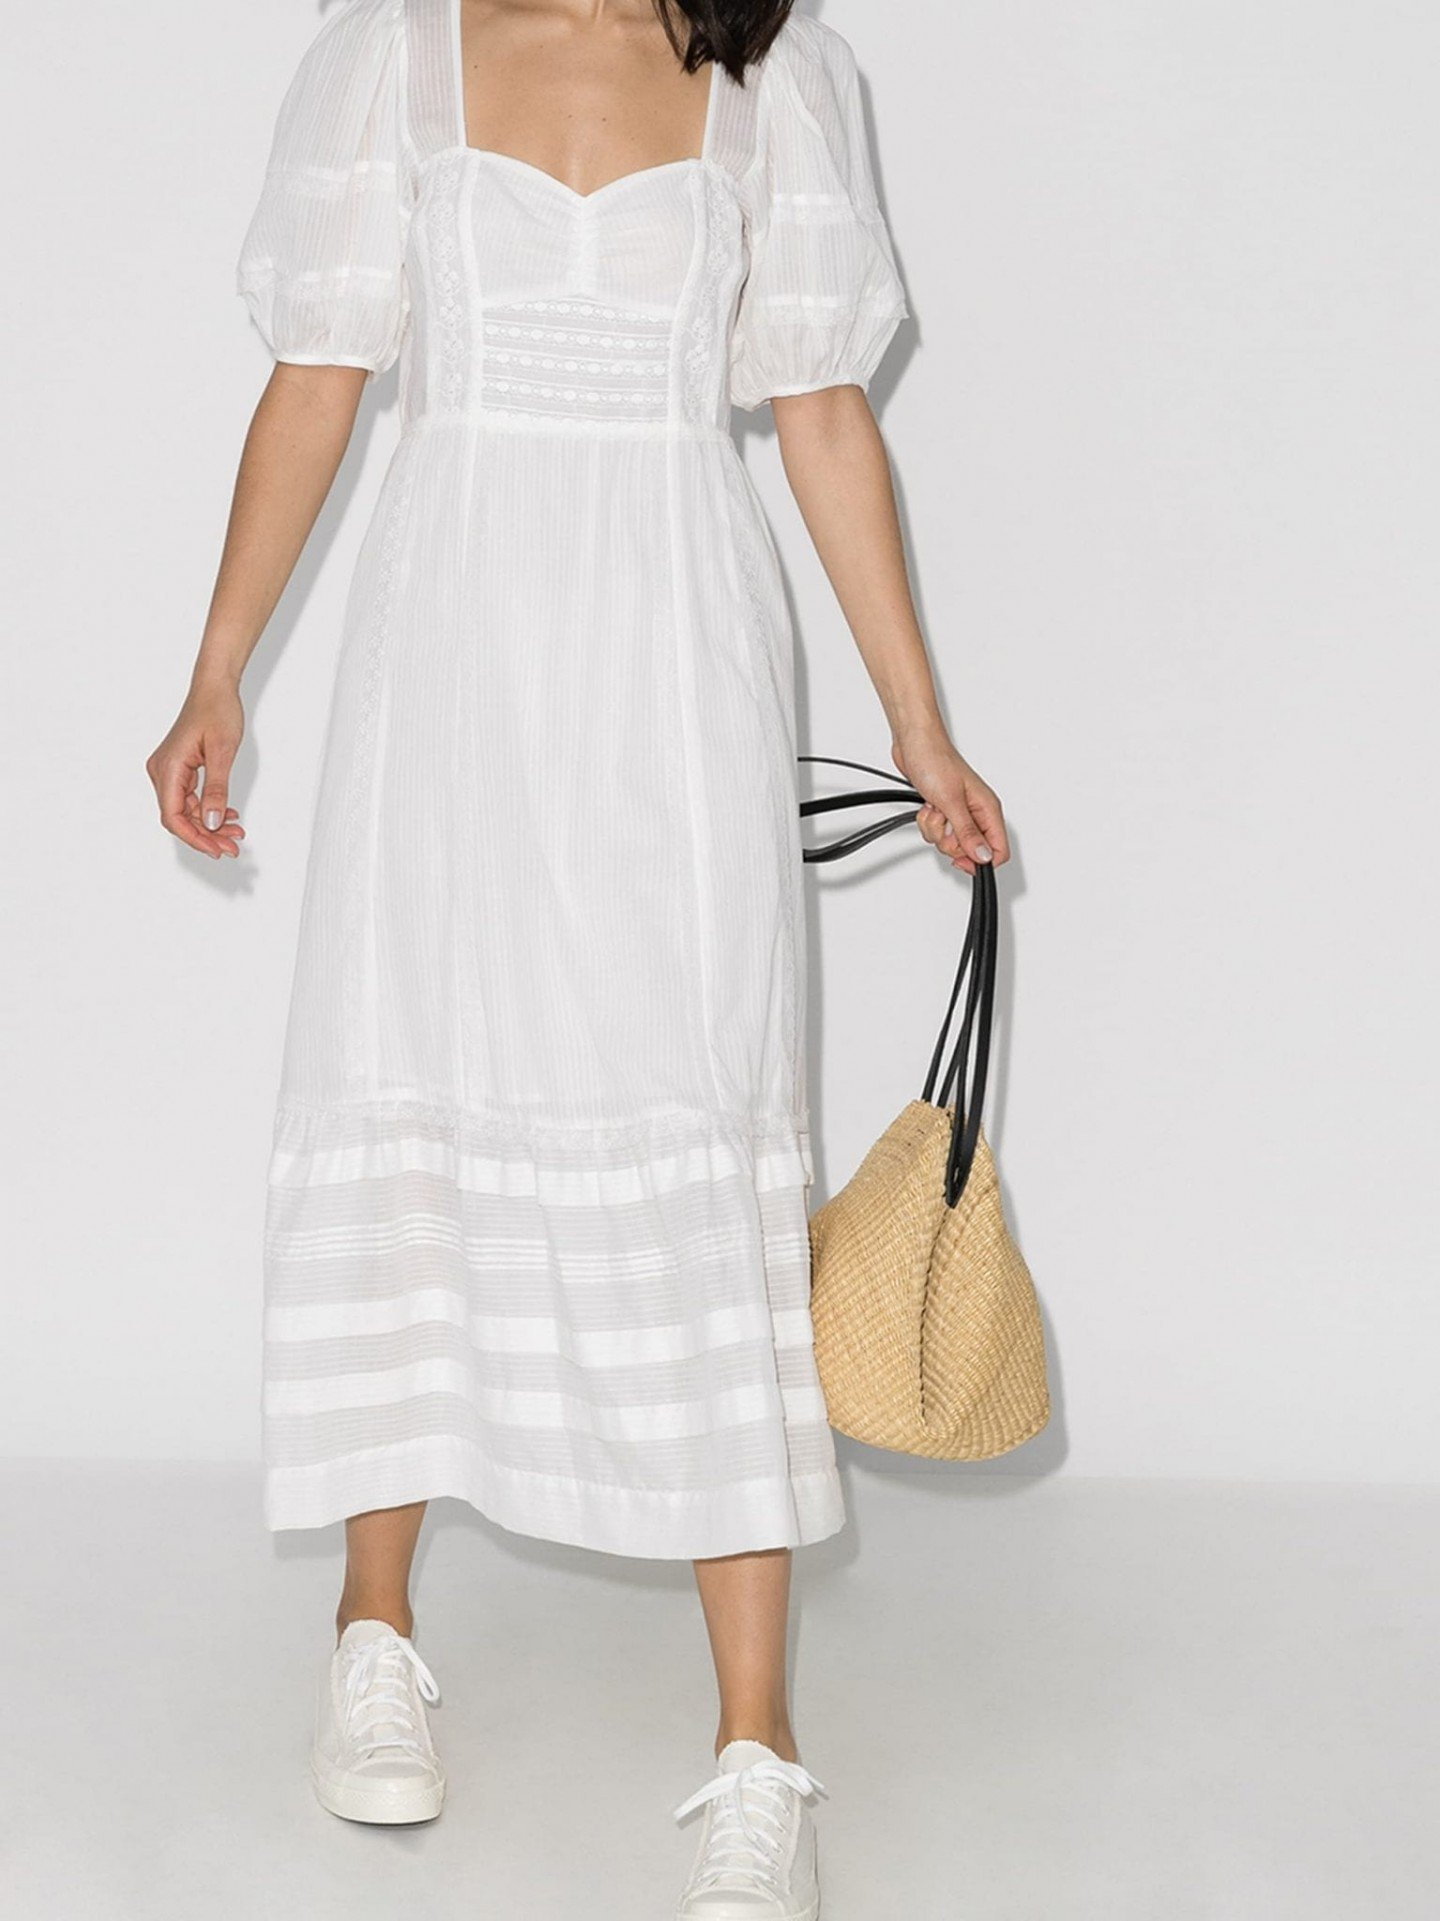 REFORMATION Norwich Lace Trim Cotton Midi Dress